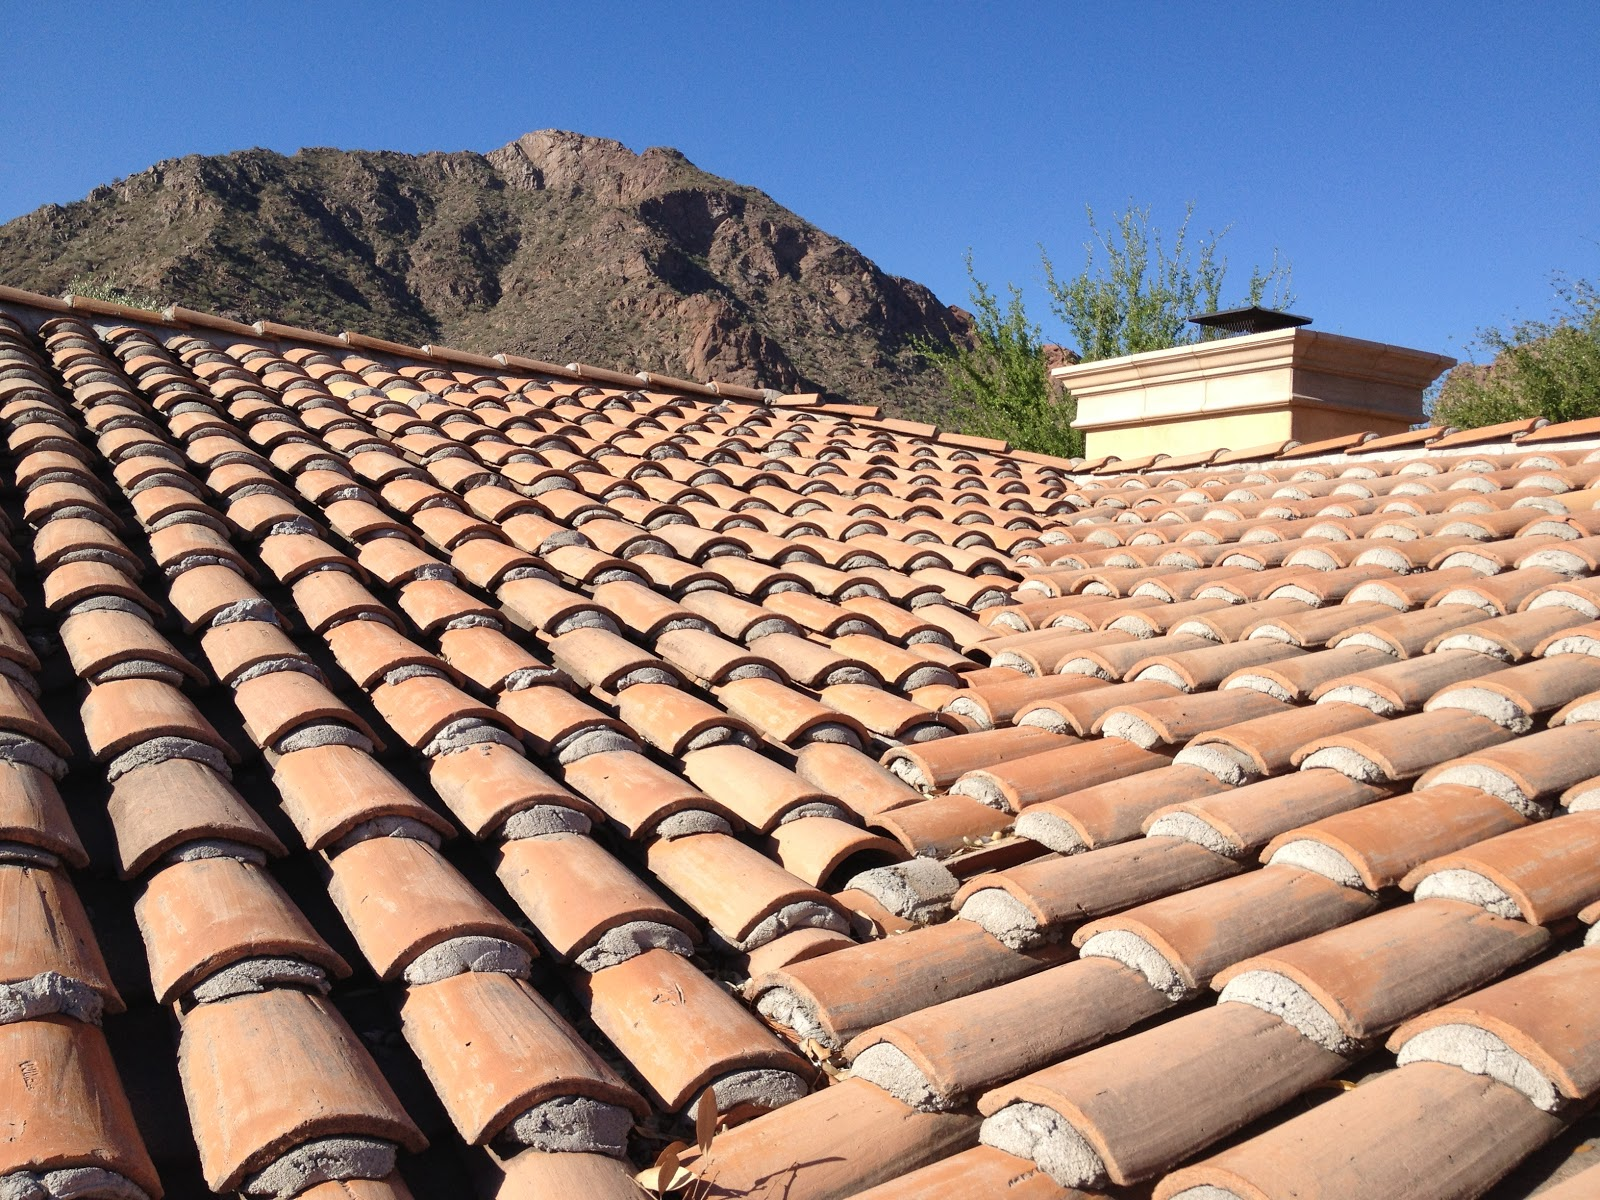 Starkweather Roofing Replaces Tiles And Installs Coatings